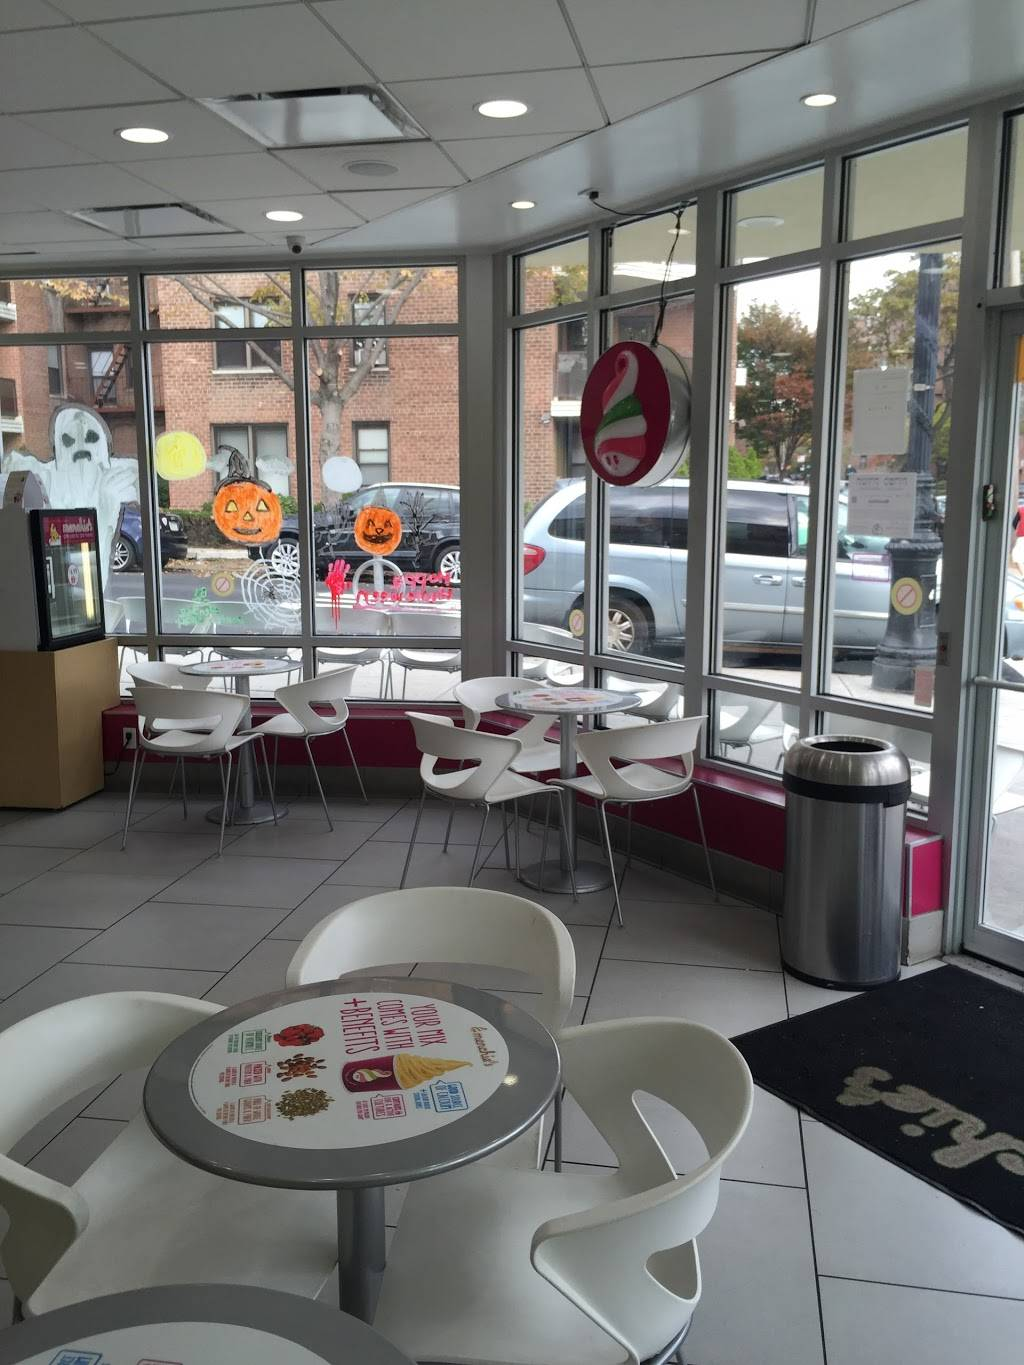 Menchies Frozen Yogurt | bakery | 3555 Johnson Ave, Bronx, NY 10463, USA | 7184322580 OR +1 718-432-2580